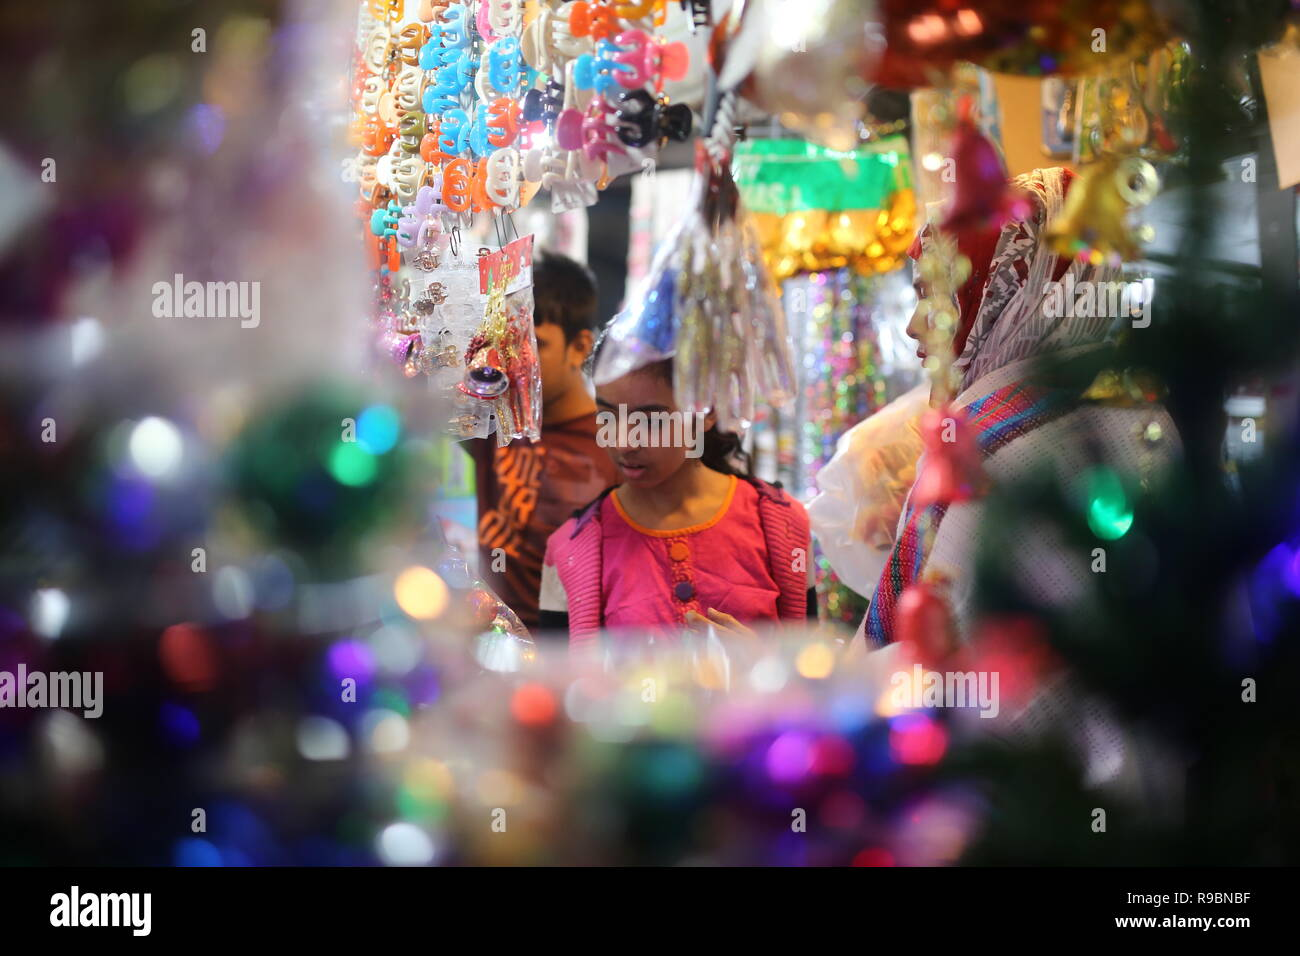 Girl seen Christmas shopping at a store ahead of Christmas Holiday in Dhaka, Bangladesh on December 20, 2018. - Stock Image